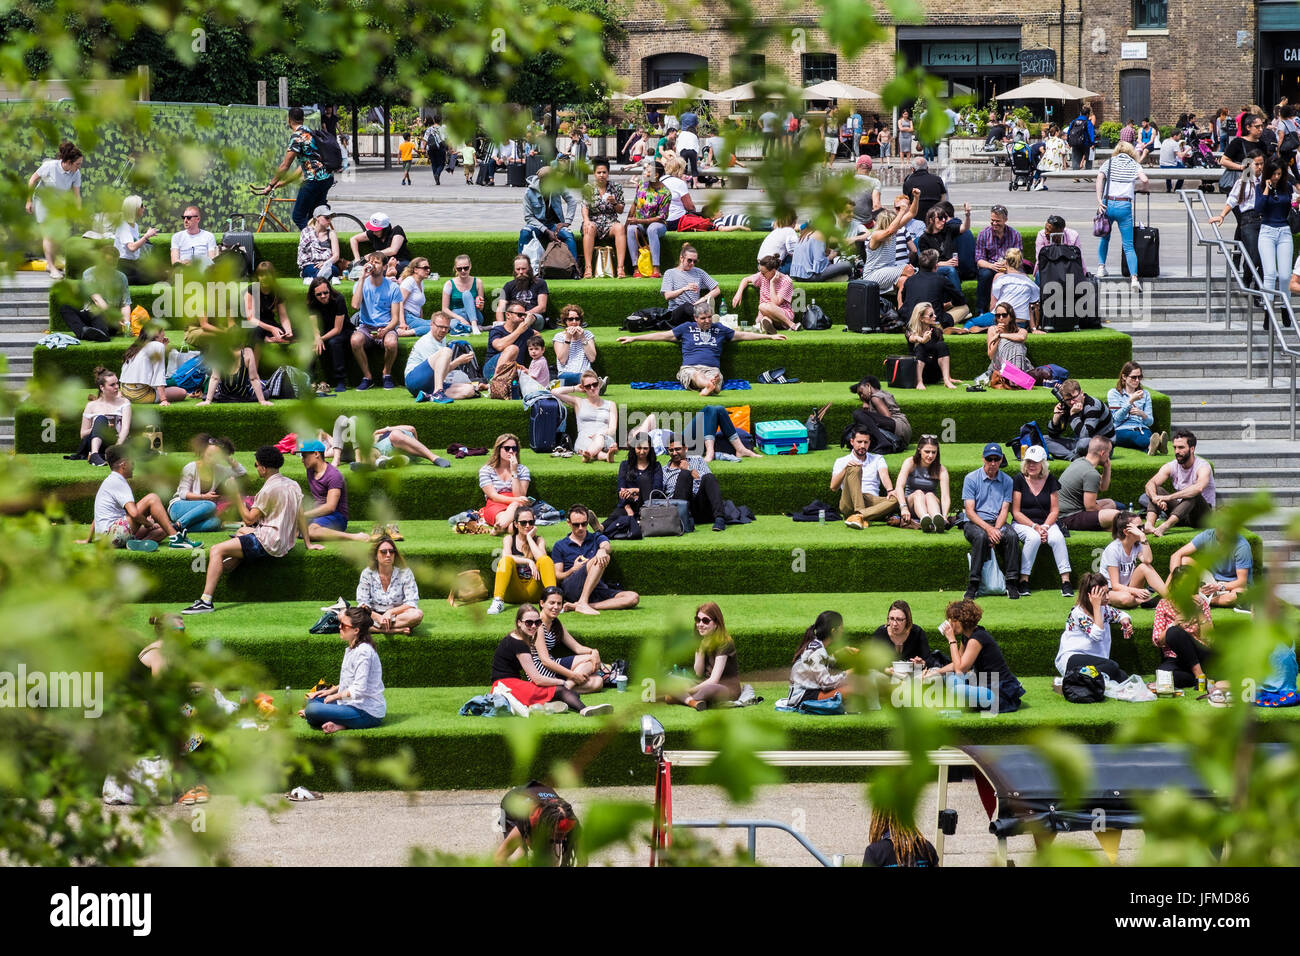 Granary Square at the heart of the regeneration of the King's Cross area along Regent's canal, London, England, - Stock Image